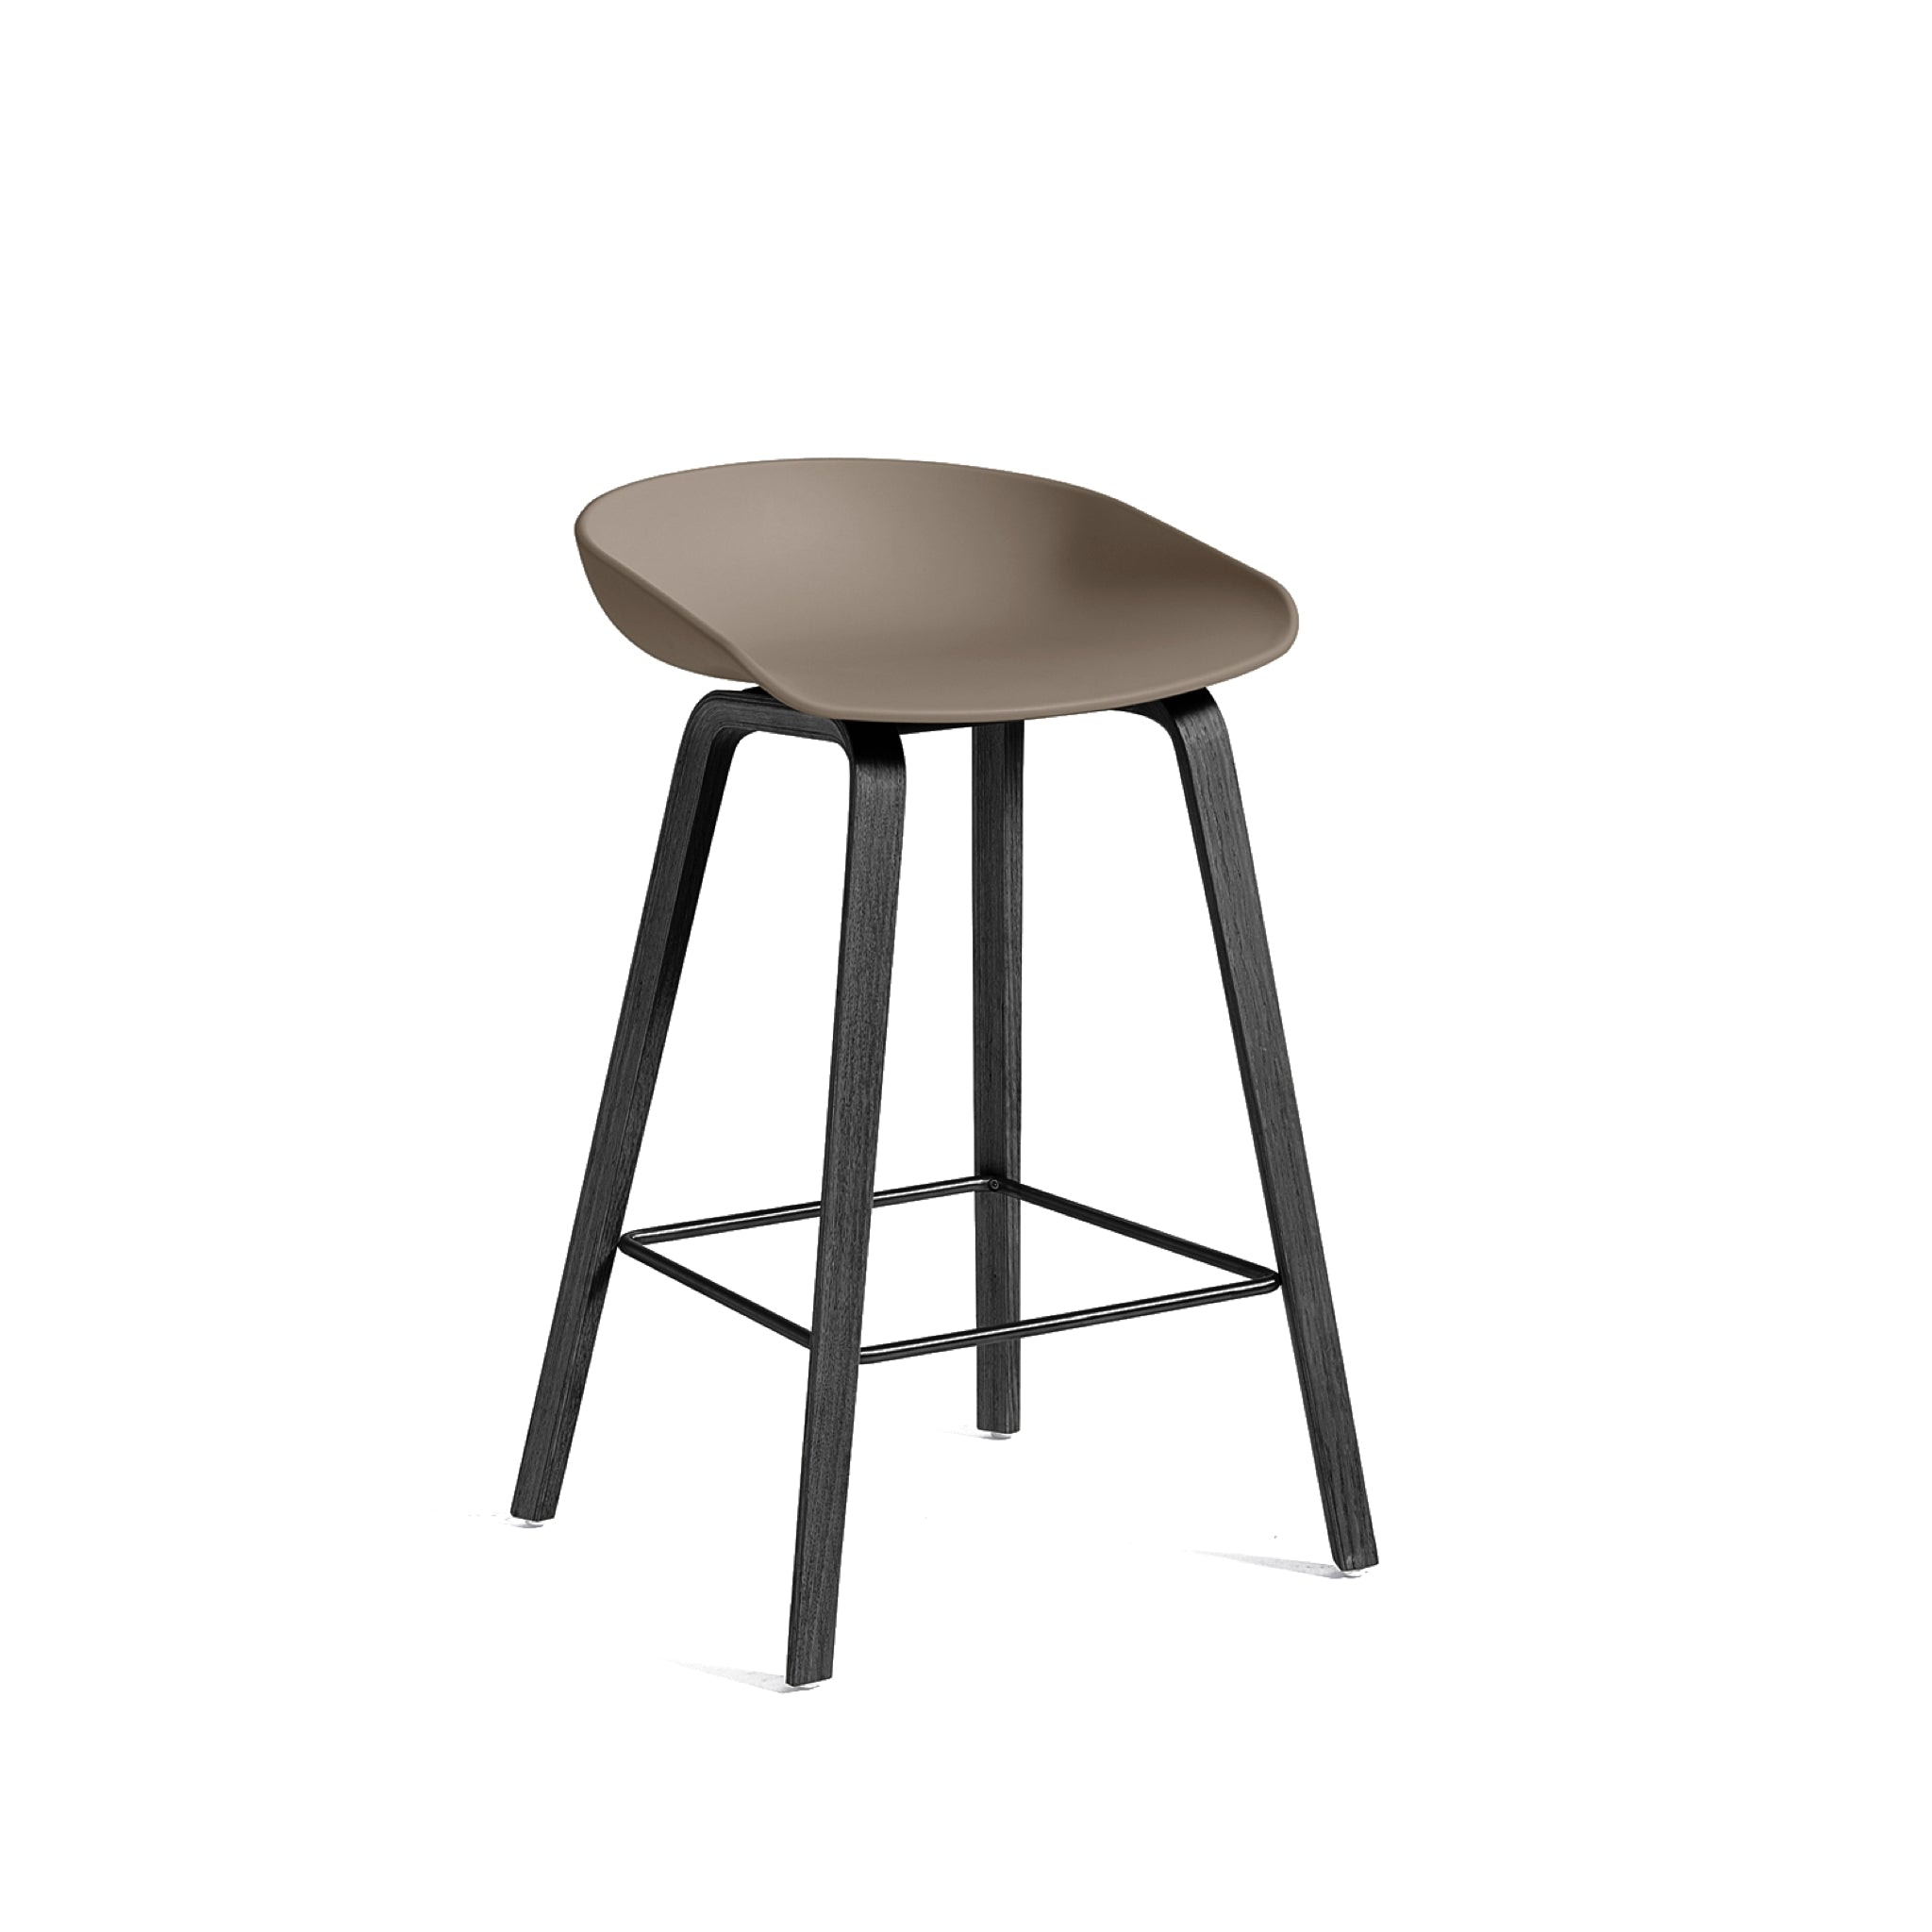 About a Stool AAS 32 Low - Wooden Base by Hay